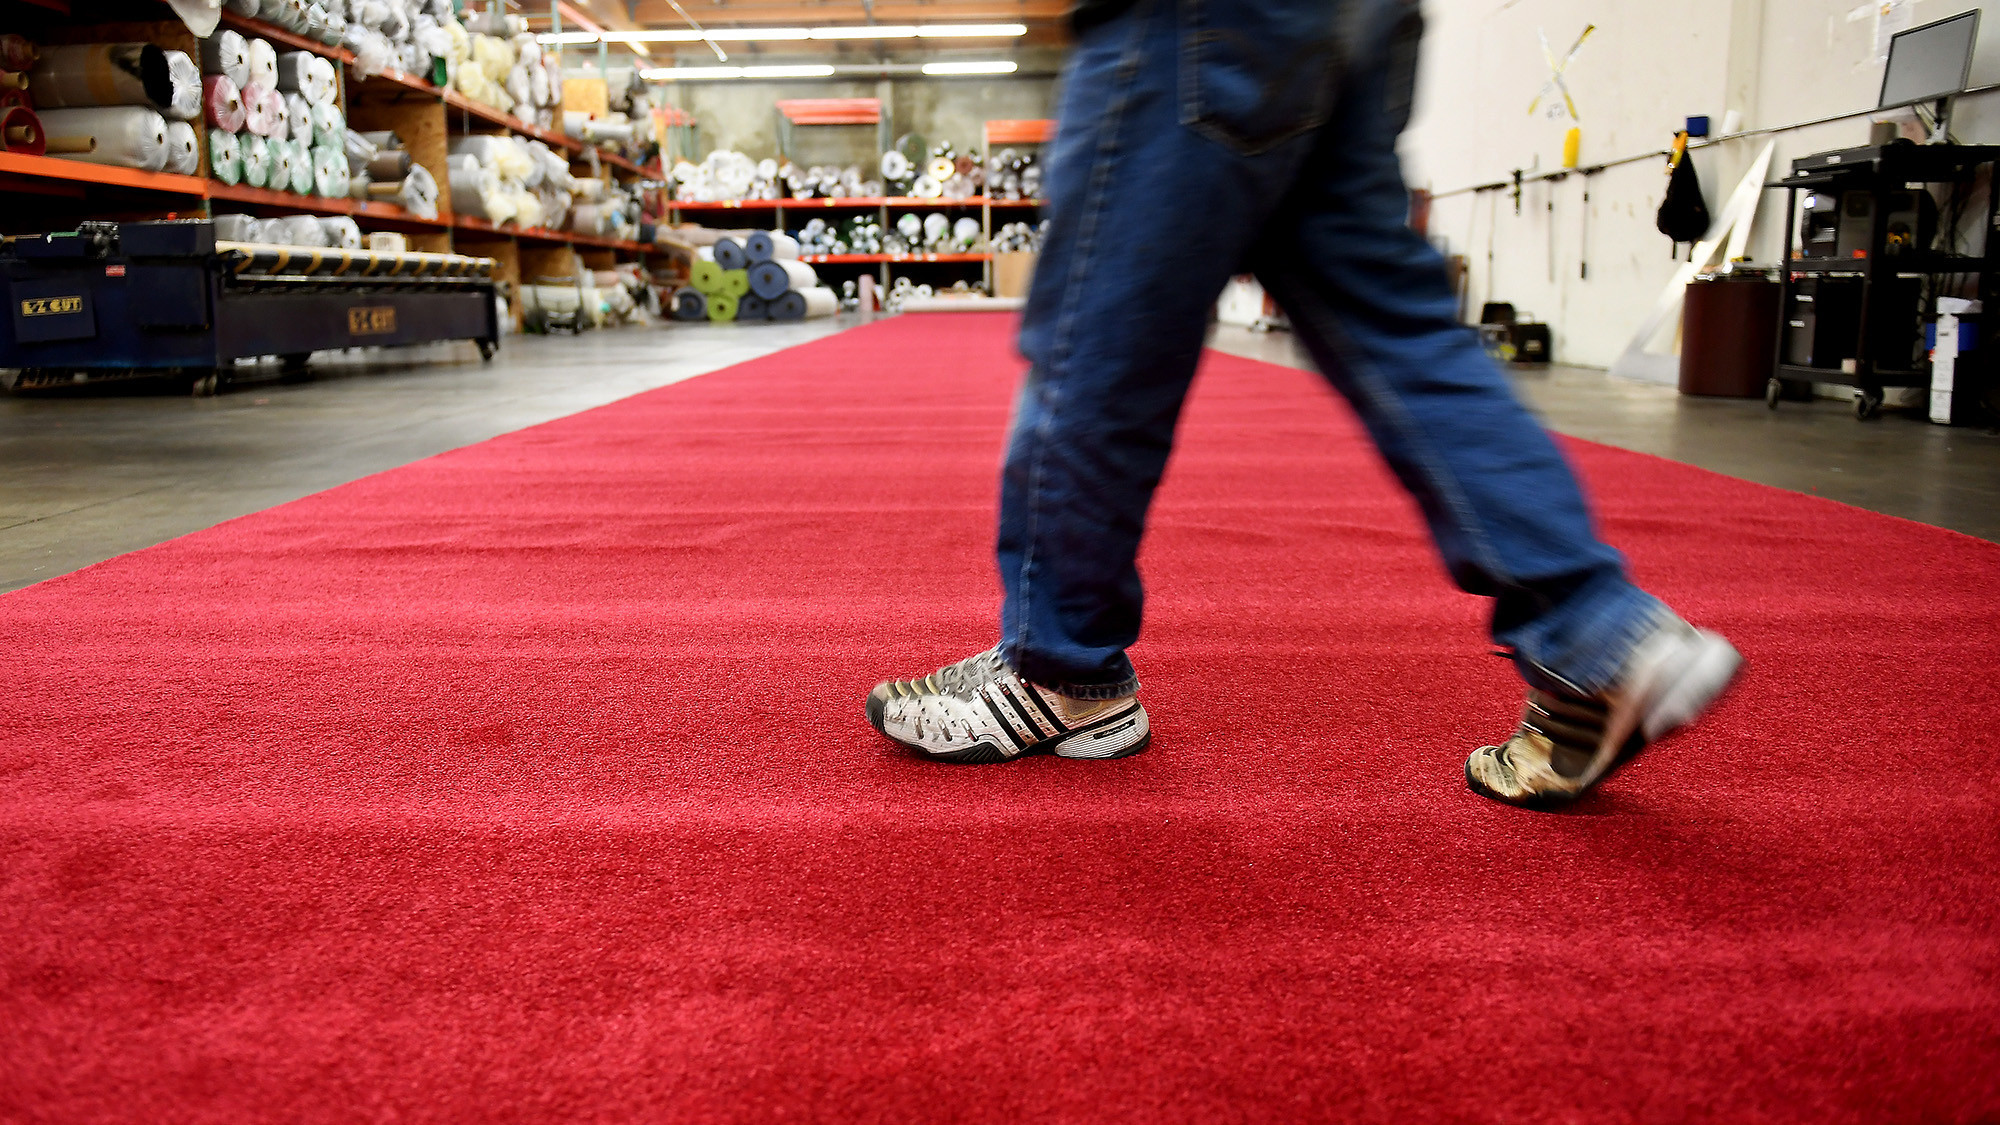 A carpet installer at Signature Systems Group walks across the red carpet in Santa Fe Springs.